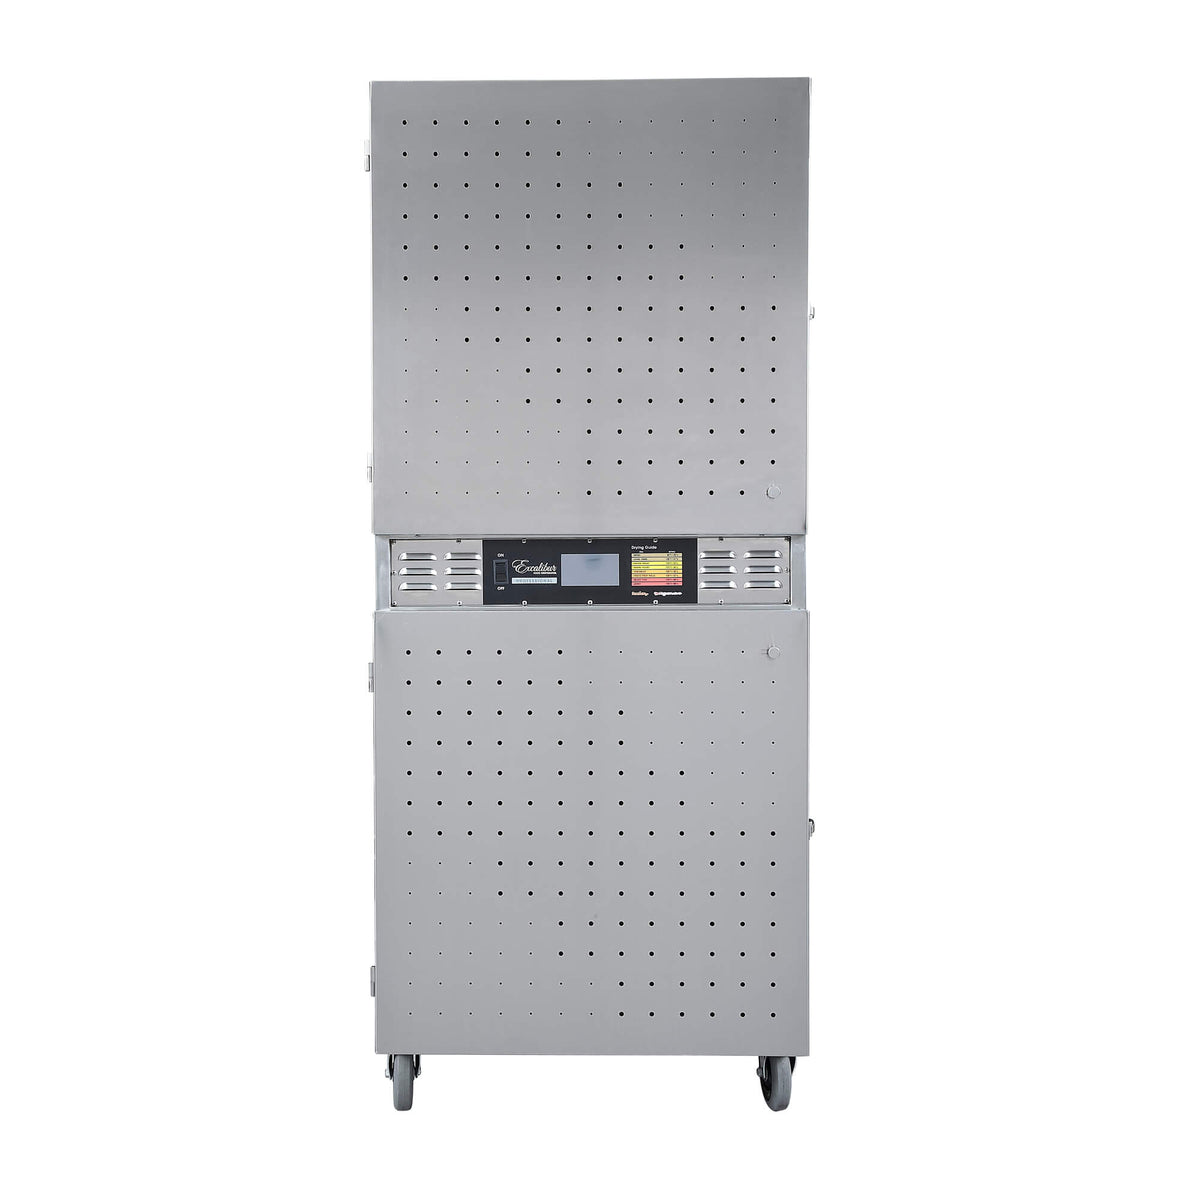 Excalibur COMM2 42 tray stainless steel commercial digital dehydrator front view with doors closed.